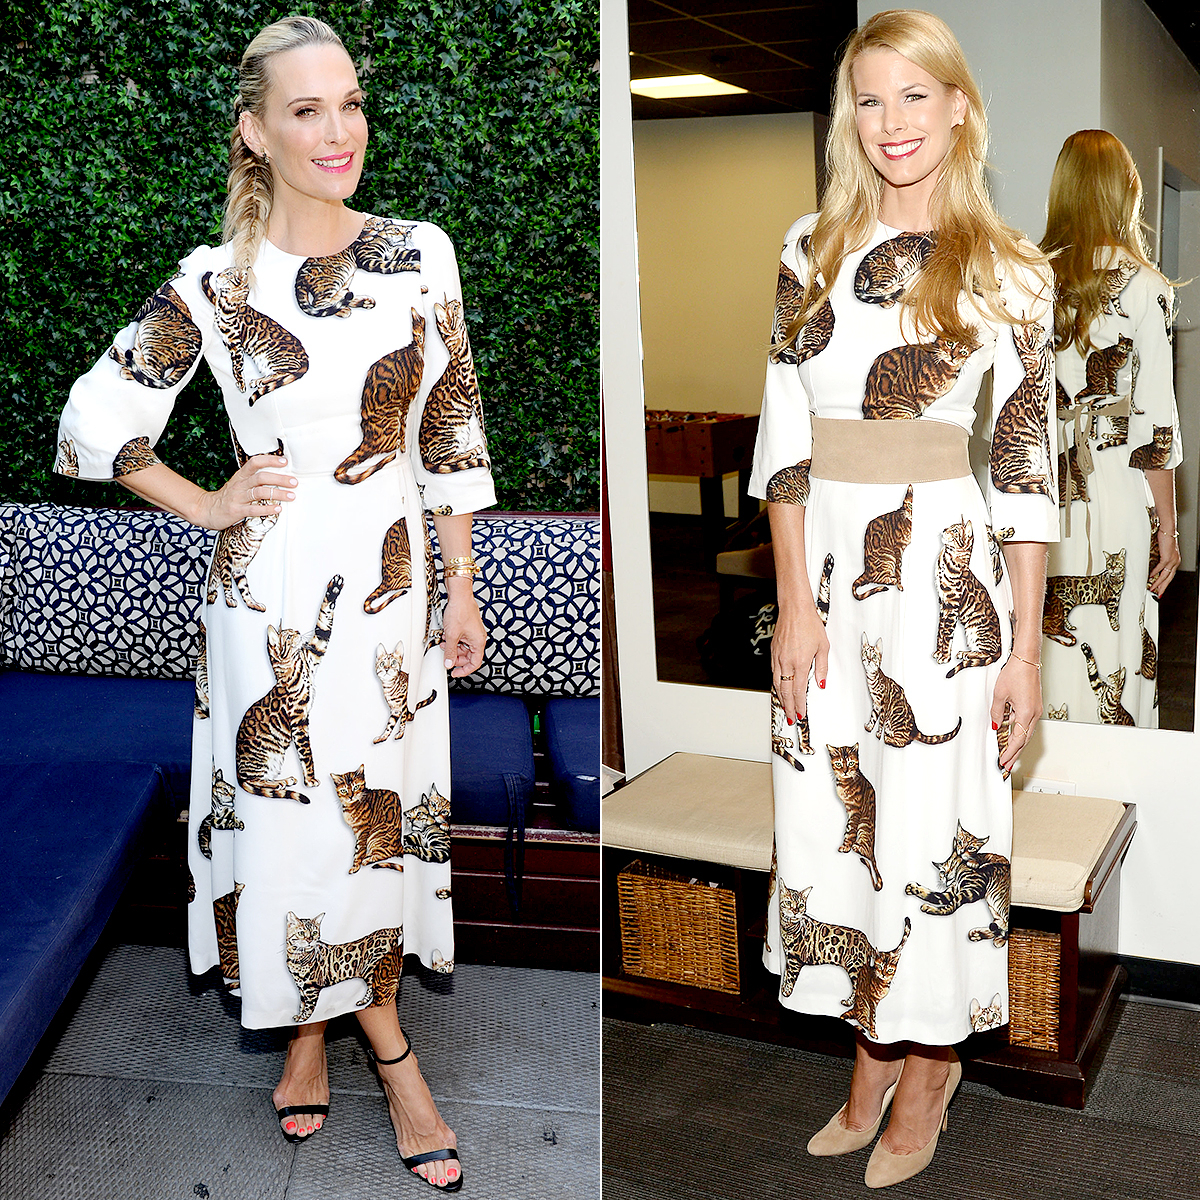 Molly Sims and Beth Stern